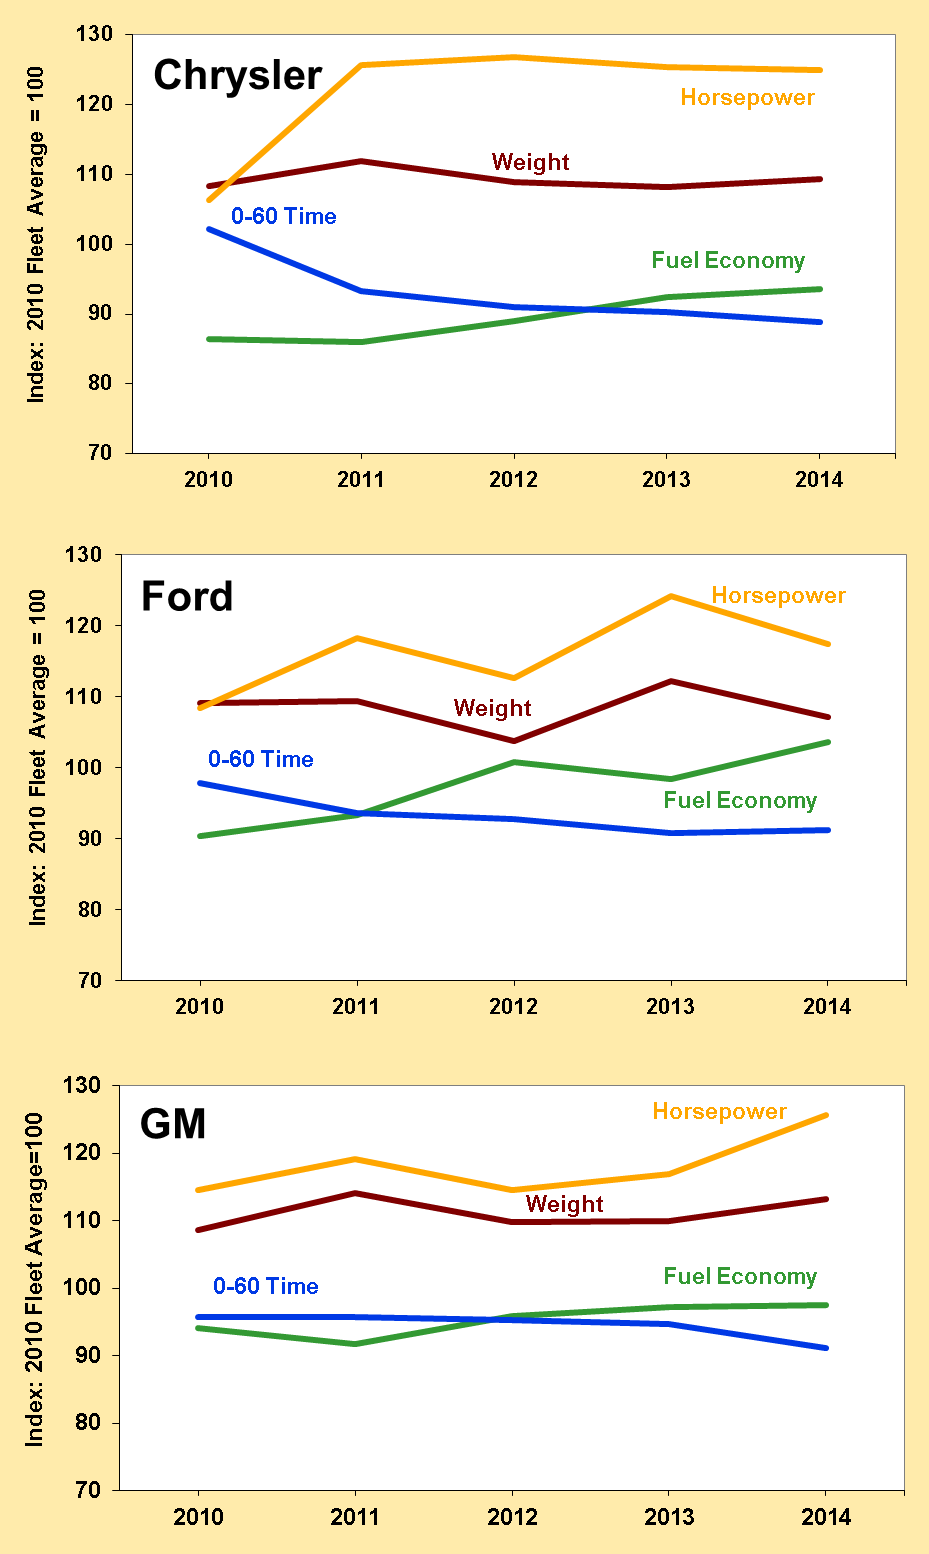 Horsepower above Fleet Average and Fuel Economy near Fleet Average for Detroit 3 Manufacturers These sales-weighted averages show that all of the Detroit 3 manufacturers have increased the horsepower